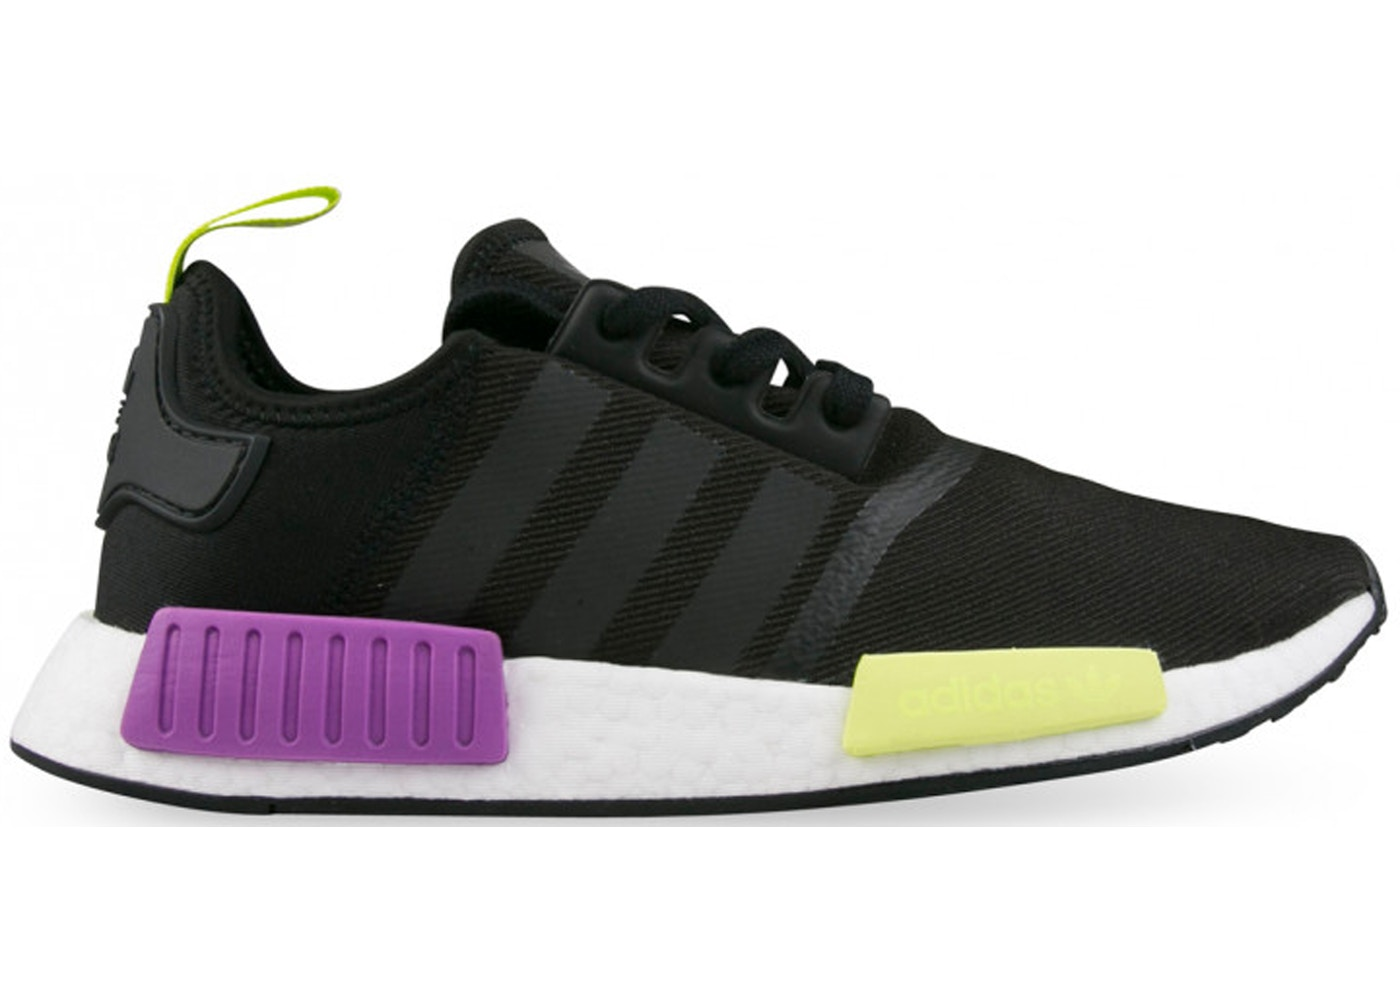 super popular b7afb ee5b0 adidas NMD R1 Core Black Shock Purple - D96627